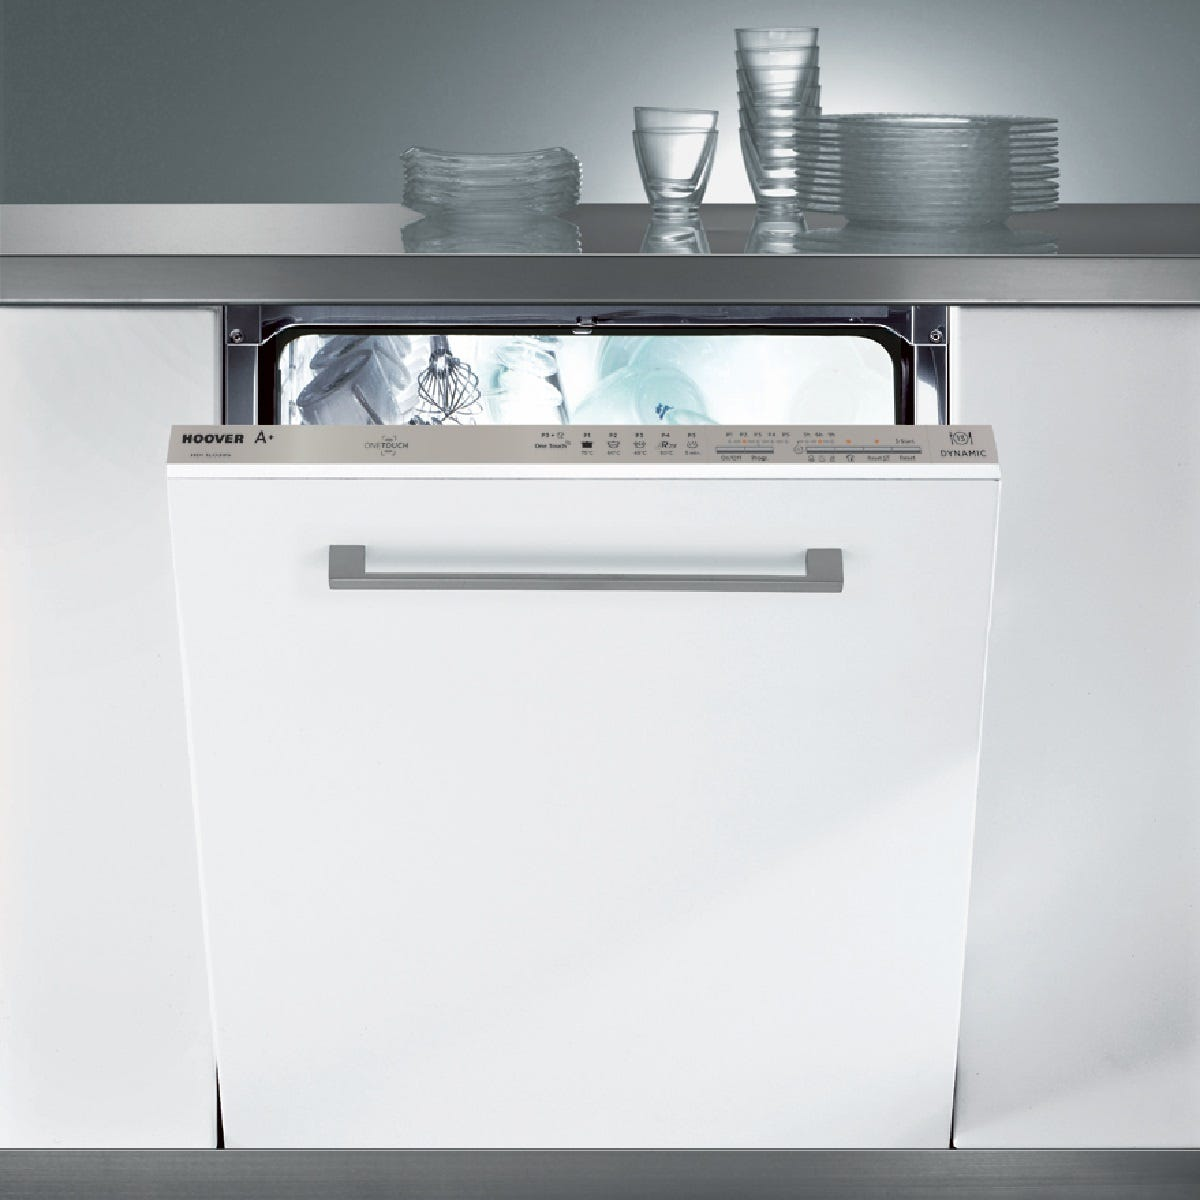 Hoover HDI 1LO38S-80/T Fully Integrated Dishwasher NFC with 13 Place Settings - White with Silver Control Panel